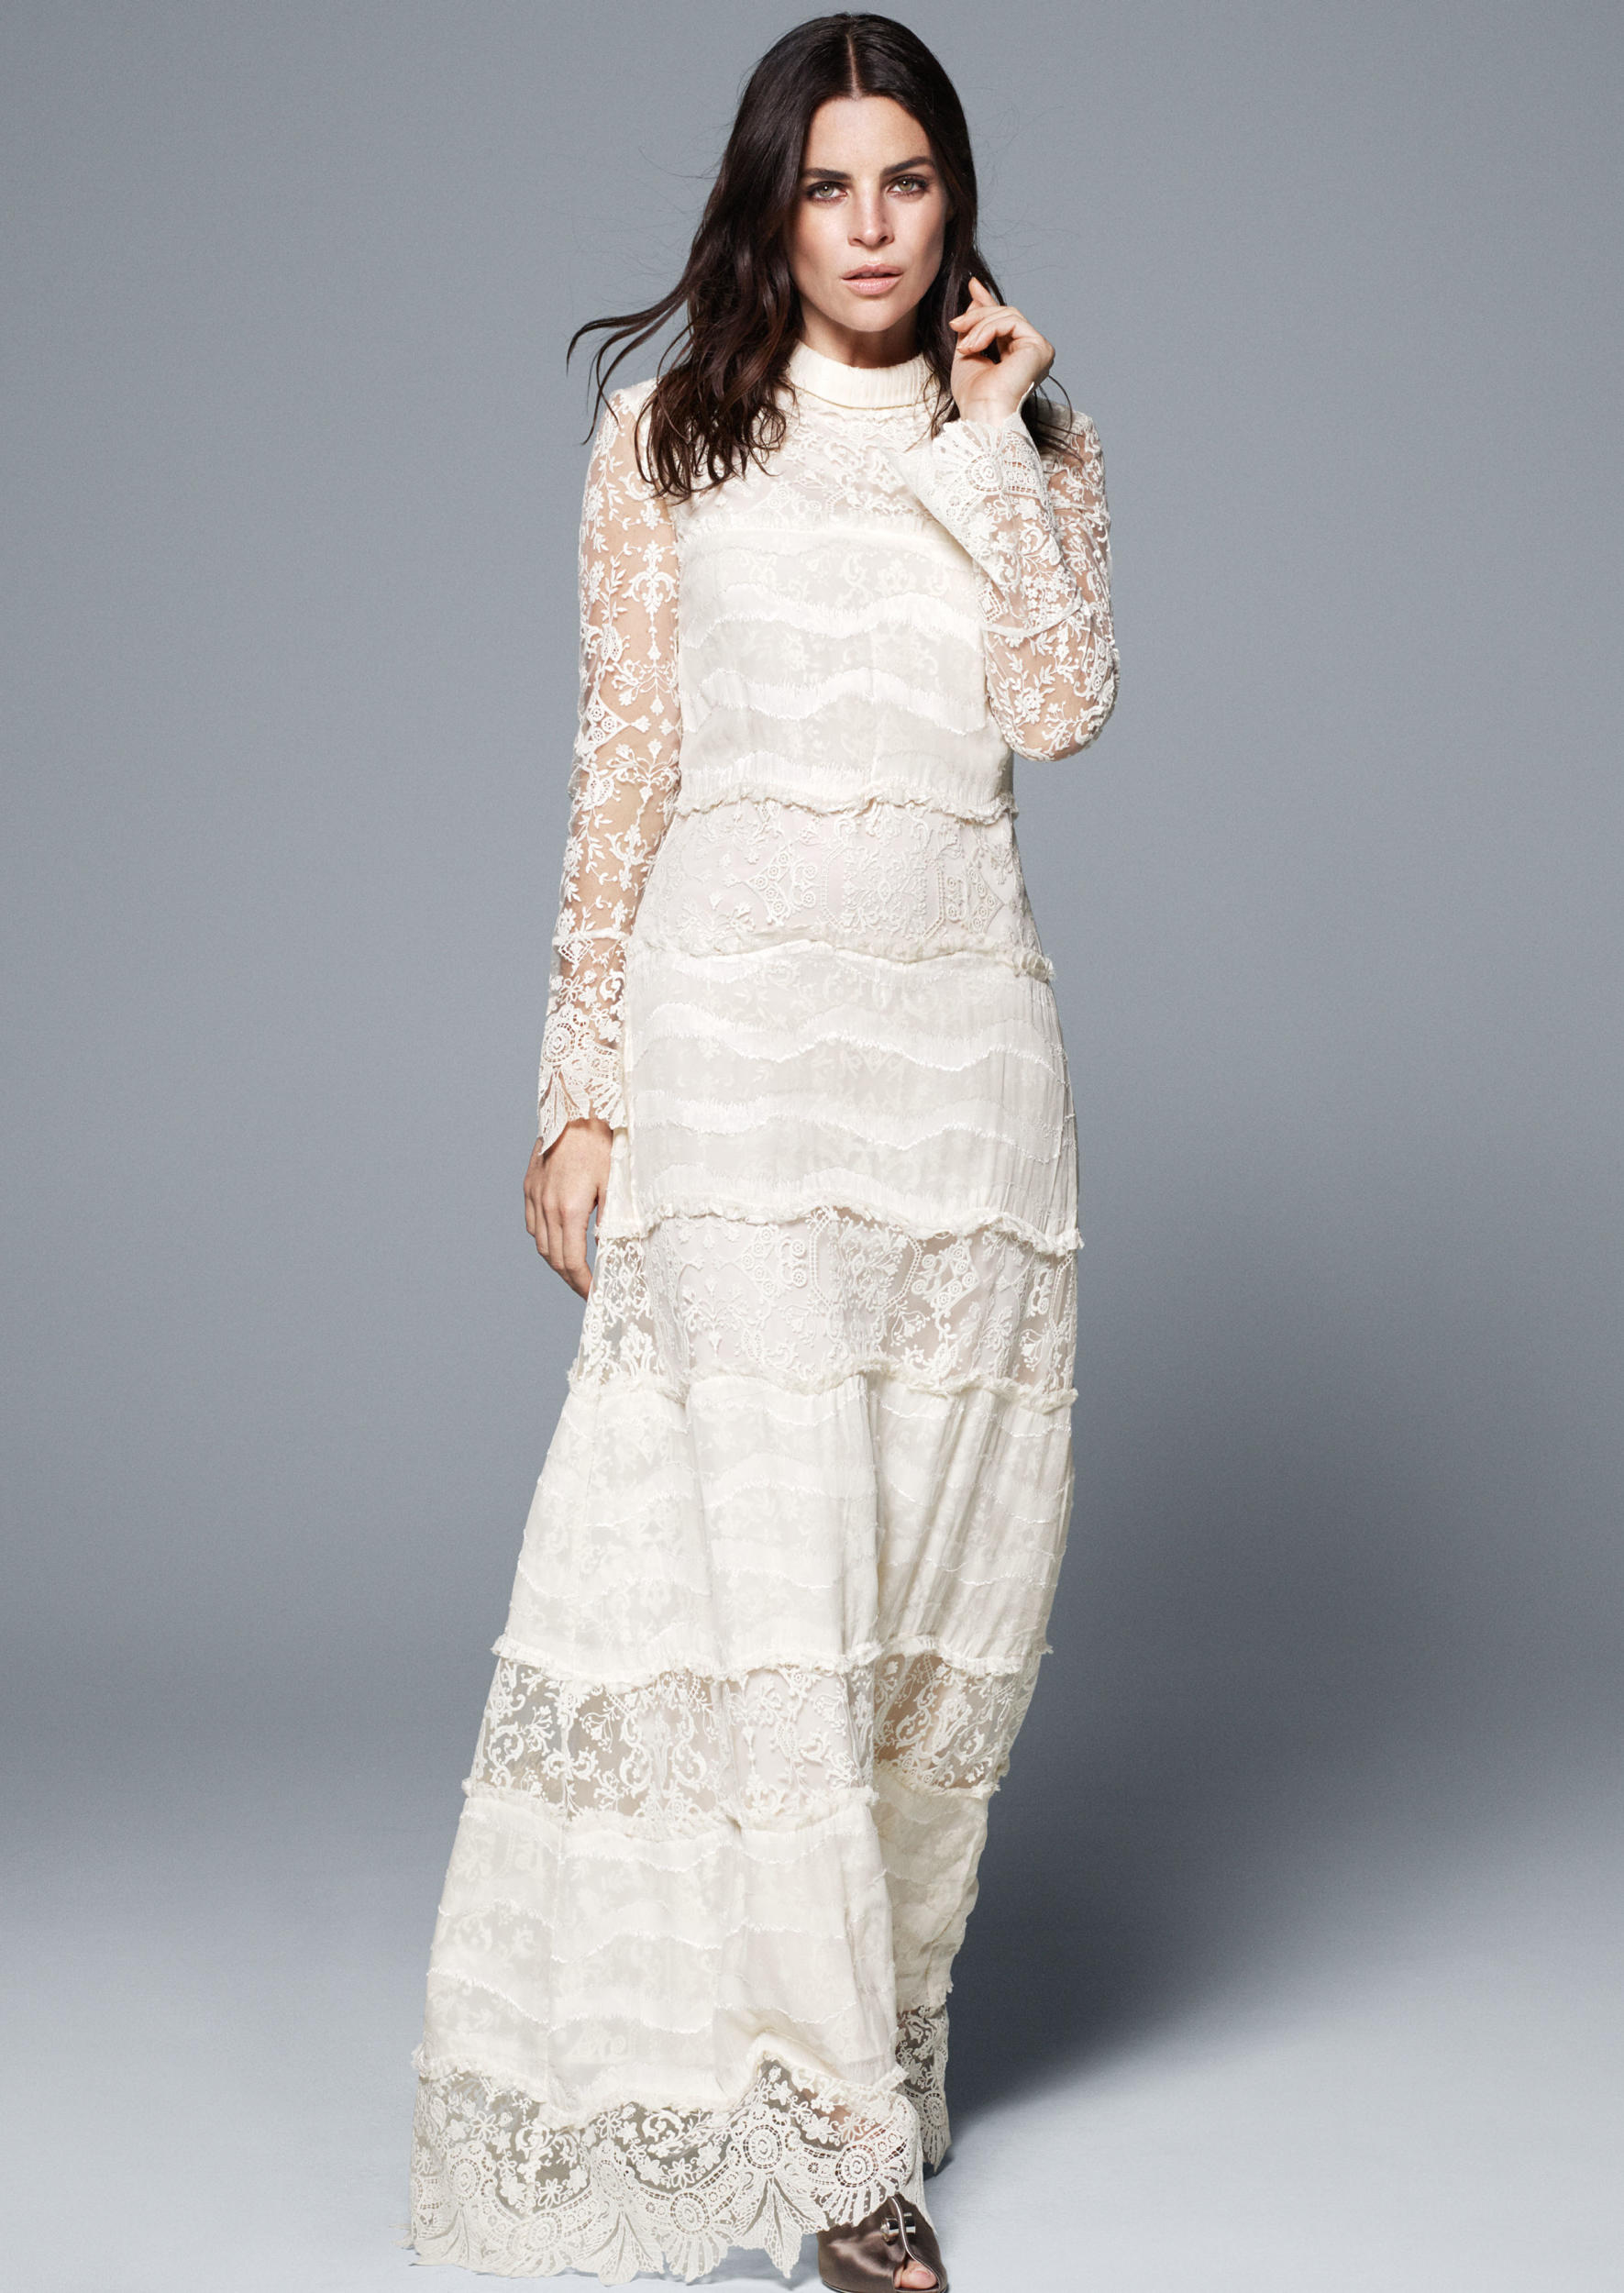 "<p>High street giant H&M is joining the likes of <a href=""http://honey.ninemsn.com.au/2016/01/11/10/31/marchesa-notte-bhldn-spring-collection"" target=""_blank"">Marchesa</a>, <a href=""http://honey.ninemsn.com.au/2015/11/20/08/58/asos-launches-bridal-range"" target=""_blank"">ASOS</a> and <a href=""http://honey.ninemsn.com.au/2015/12/03/09/36/affordable-bridal-dresses-self-portrait-bergdorf-goodman"" target=""_blank"">Self-Portrait</a> in the affordable bridal wear category, unveiling a new Conscious Exclusive collection containing three wedding dresses. Modelled by editor and ultimate in French girl cool, Julia Restoin-Roitfleld, the collection was inspired by archive pieces from Paris' Musée des Arts Décoratifs and is made more sustainably than the main line. If you're not getting hitched any time soon, you'll also find plenty of wedding guest-worthy pieces that won't cost more than the gift.</p><p>The range is available from 7 April online and in select stores. Click through to see every piece from the collection.</p>"